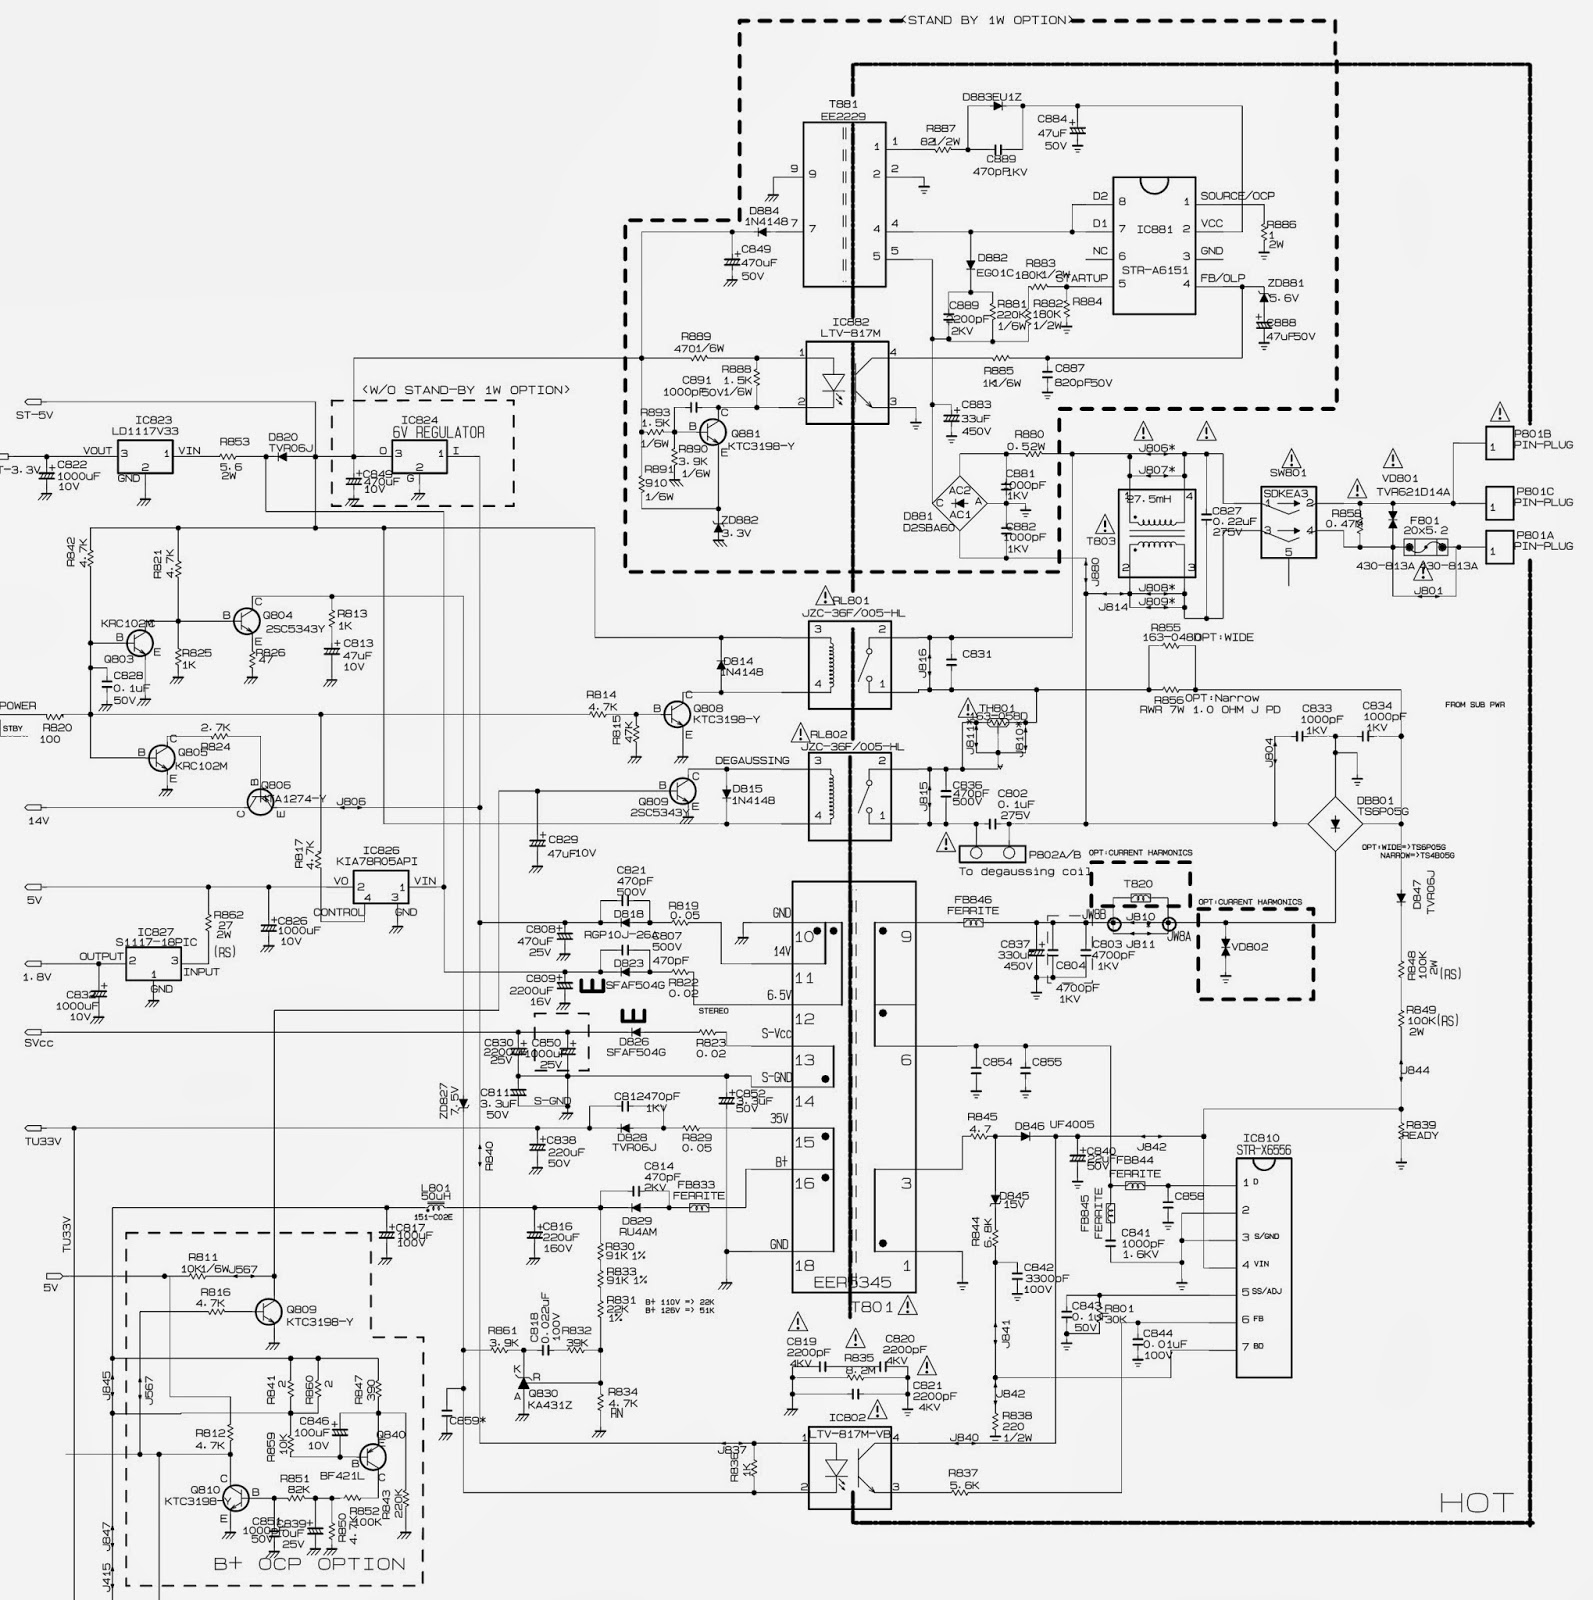 medium resolution of str x 6556 based smps schematic circuit diagram